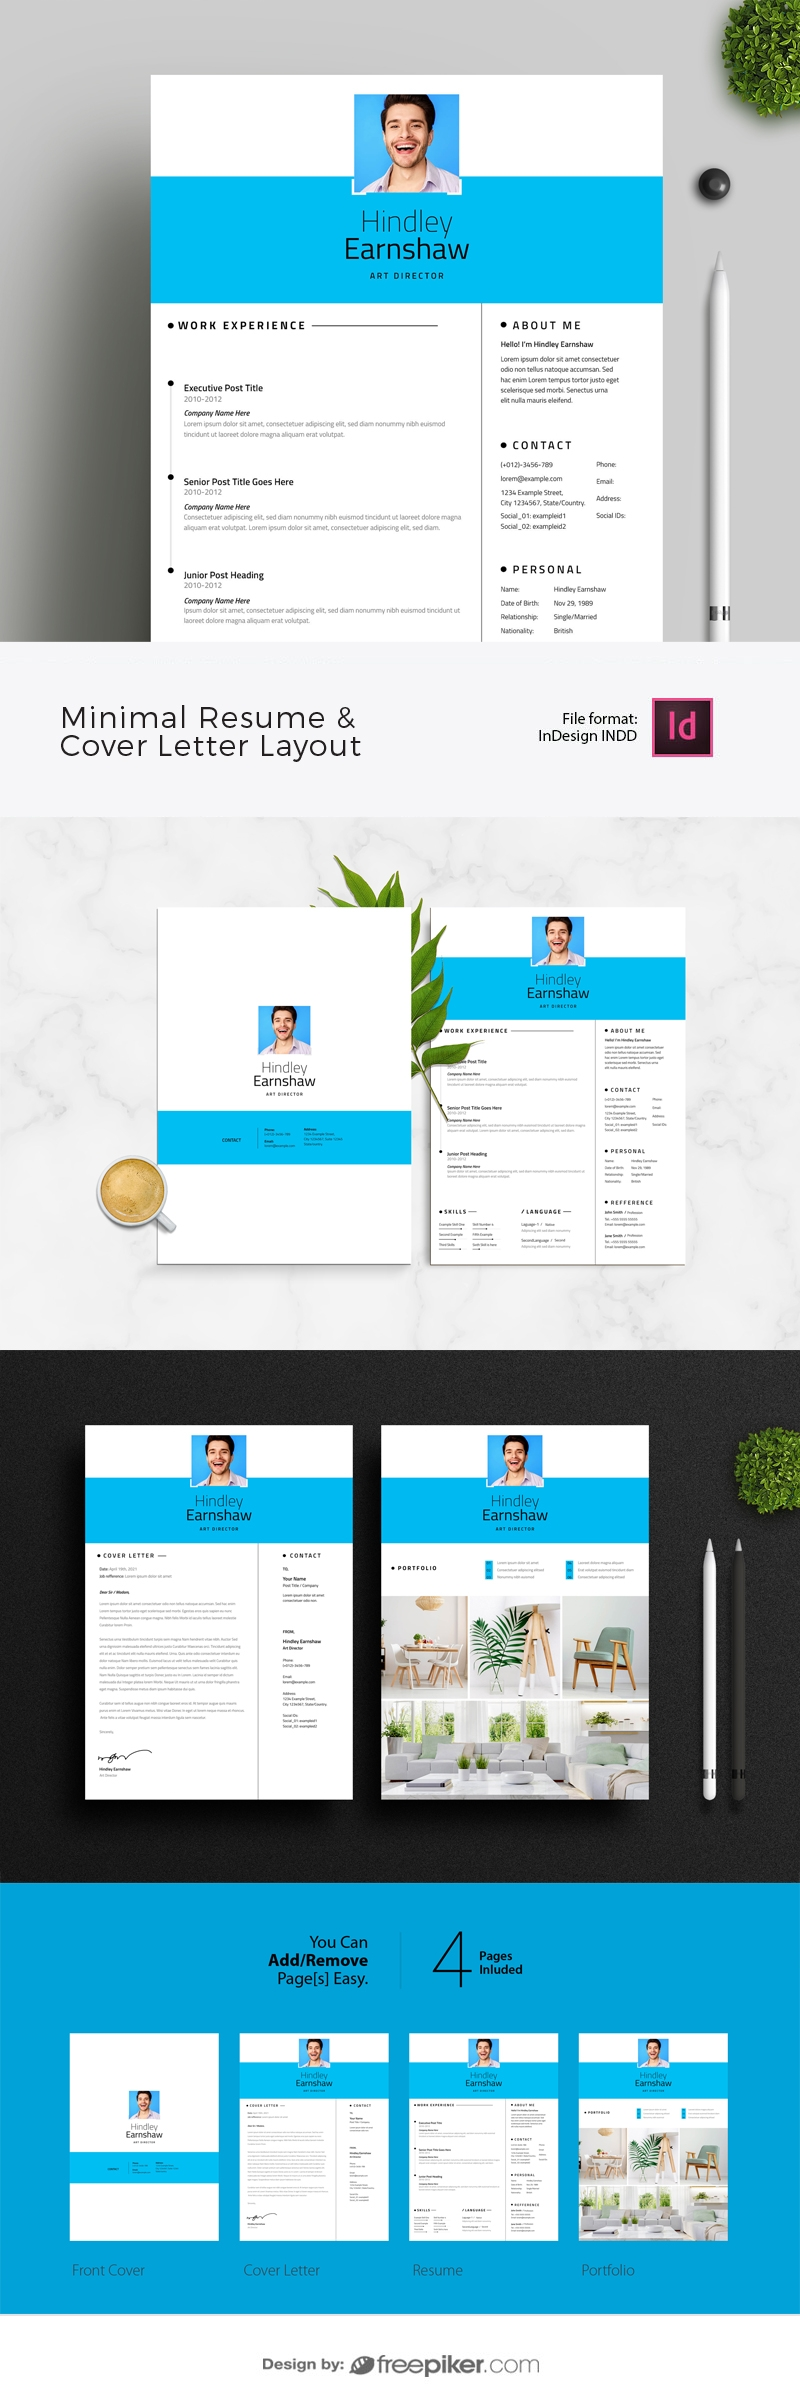 Minimal Resume & Cover Letter Layout with Cyan Elements